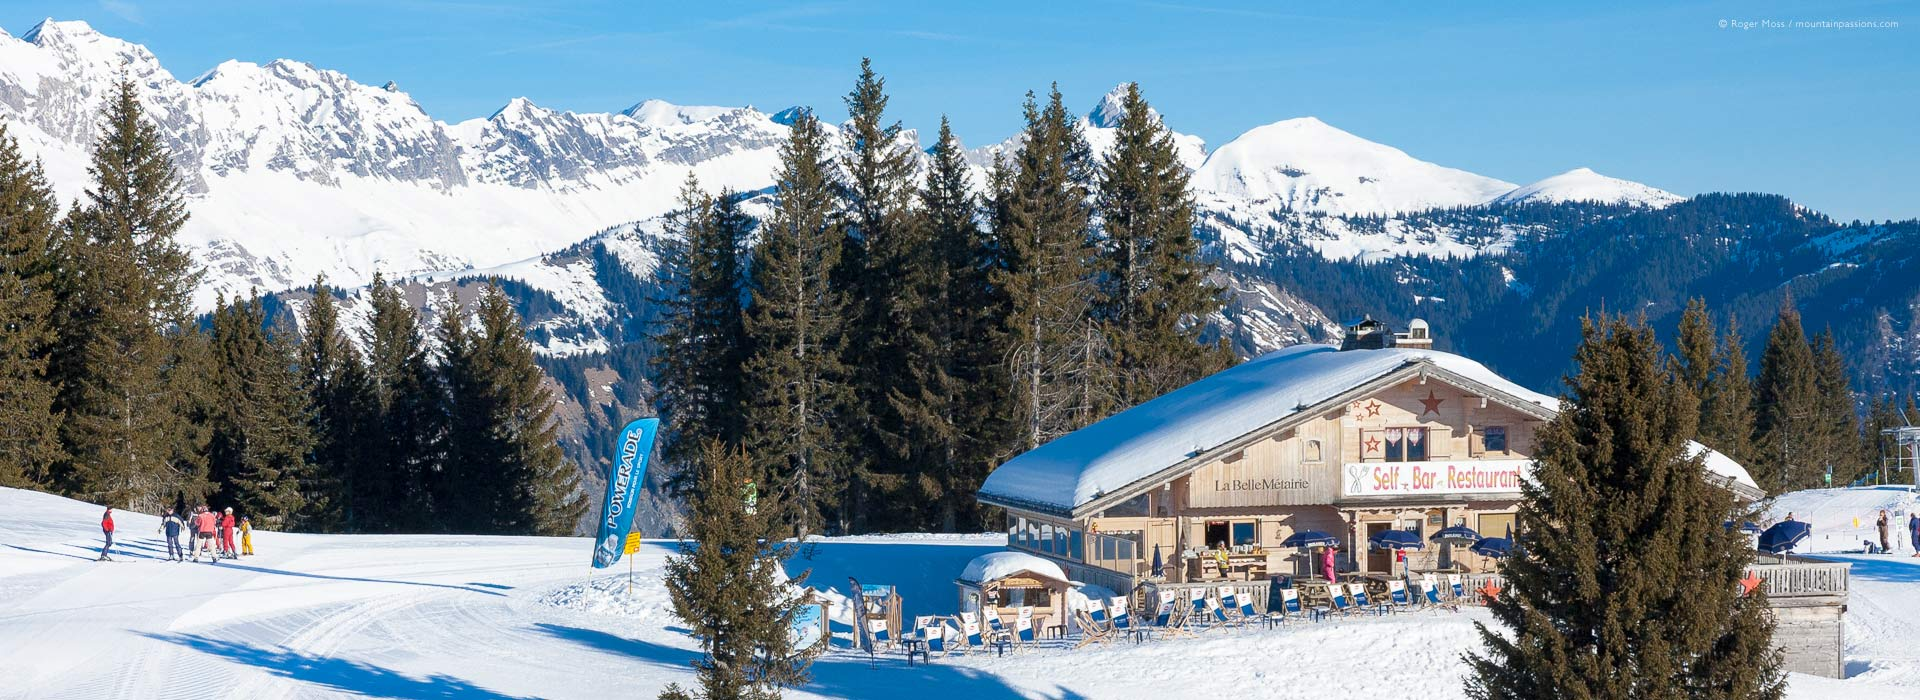 Wide view of early morning skiers beside chalet-style mountain restaurant above Crest Voland.